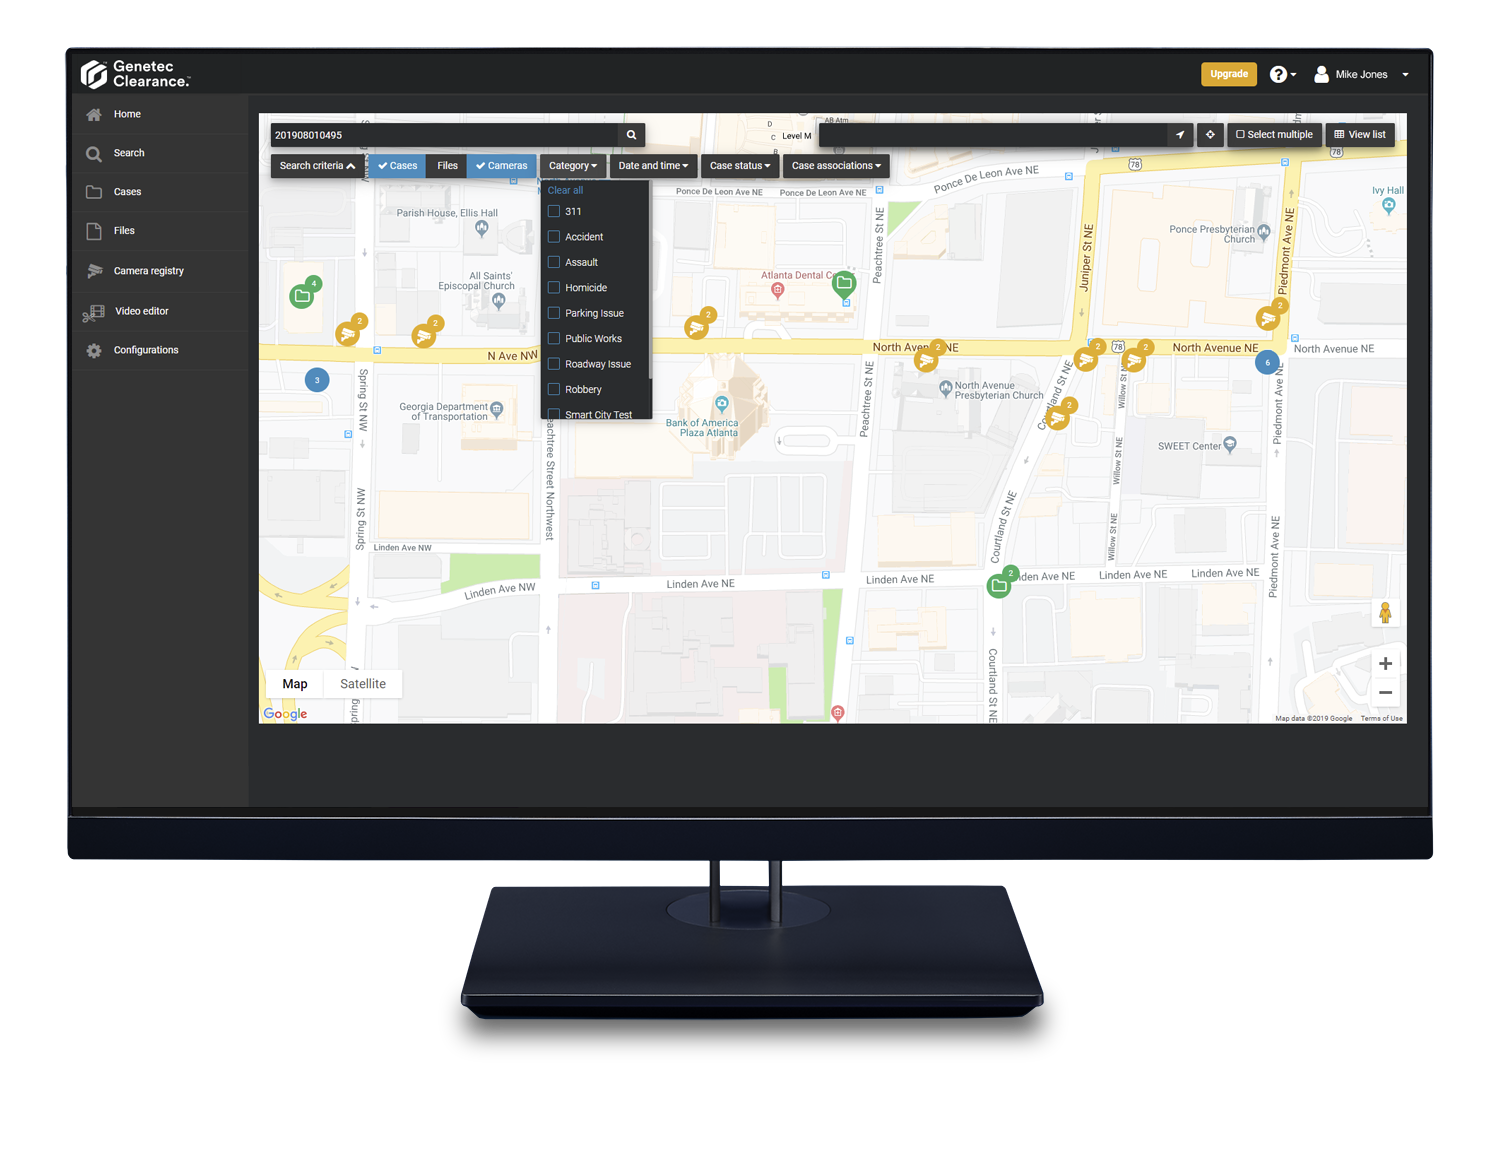 Genetec, in collaboration with Intel, launch e-book to help public safety organizations build safer, smarter cities